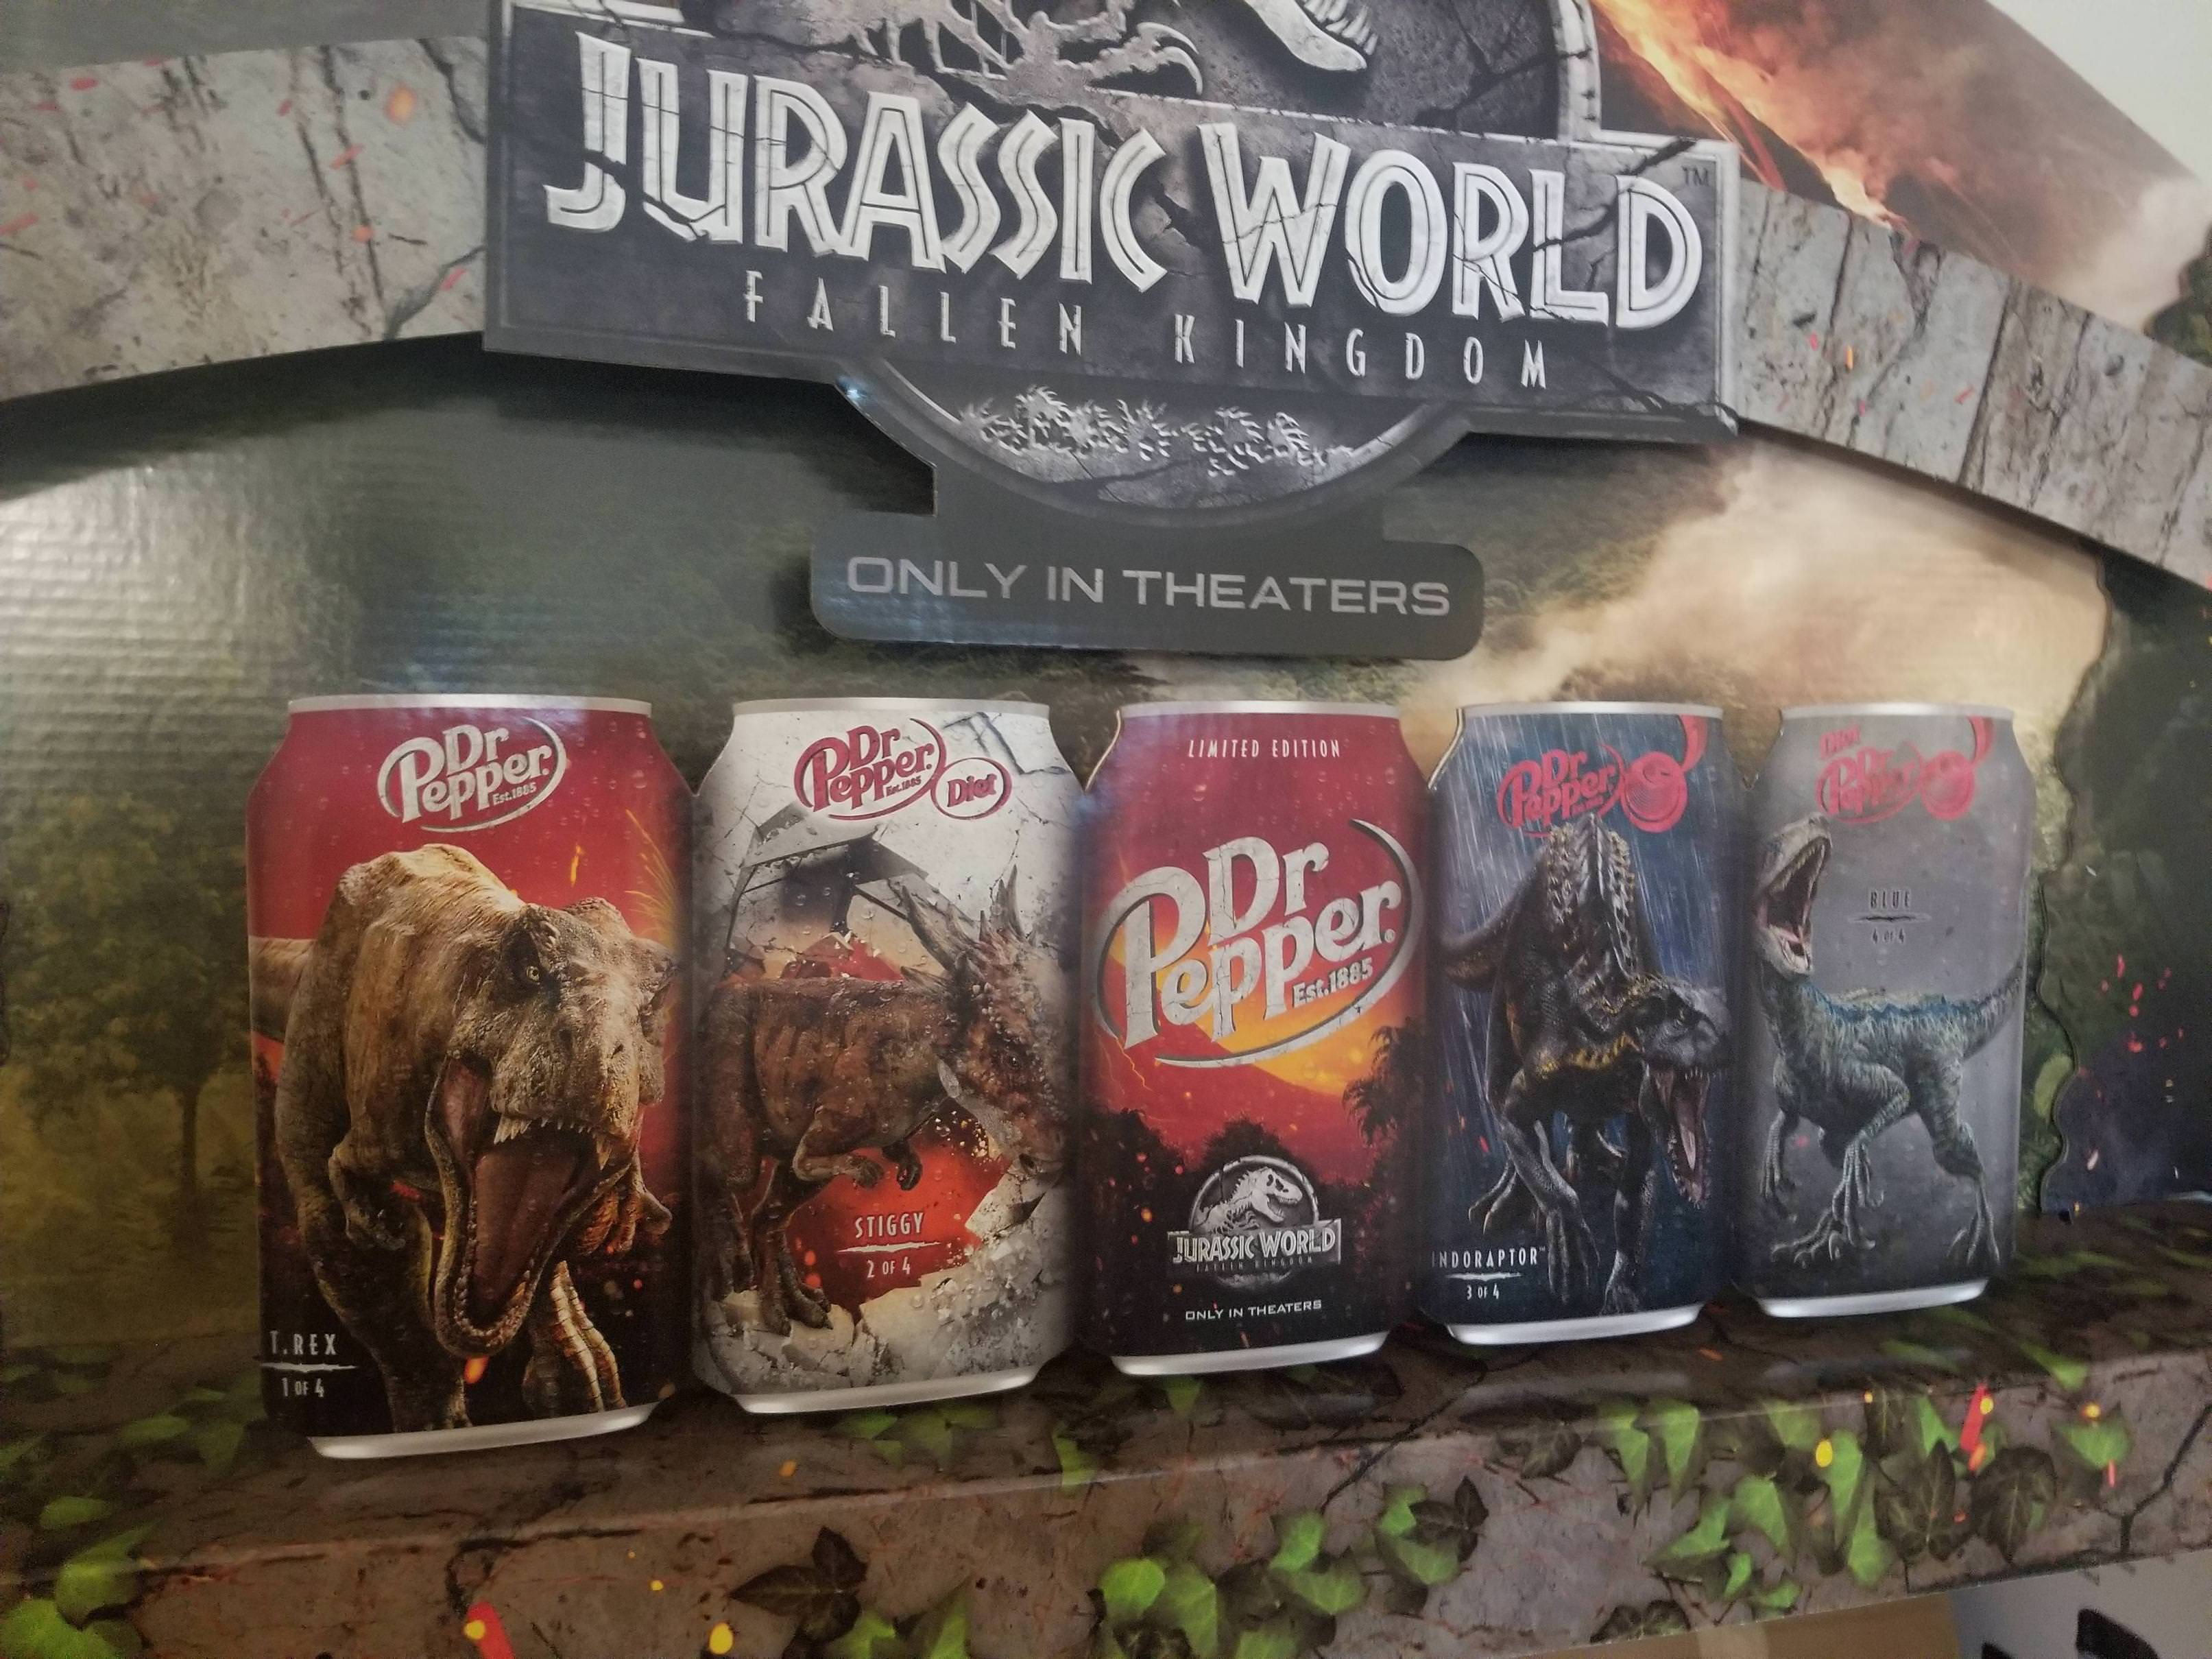 39 Jurassic World Fallen Kingdom 39 and Dr Pepper Join